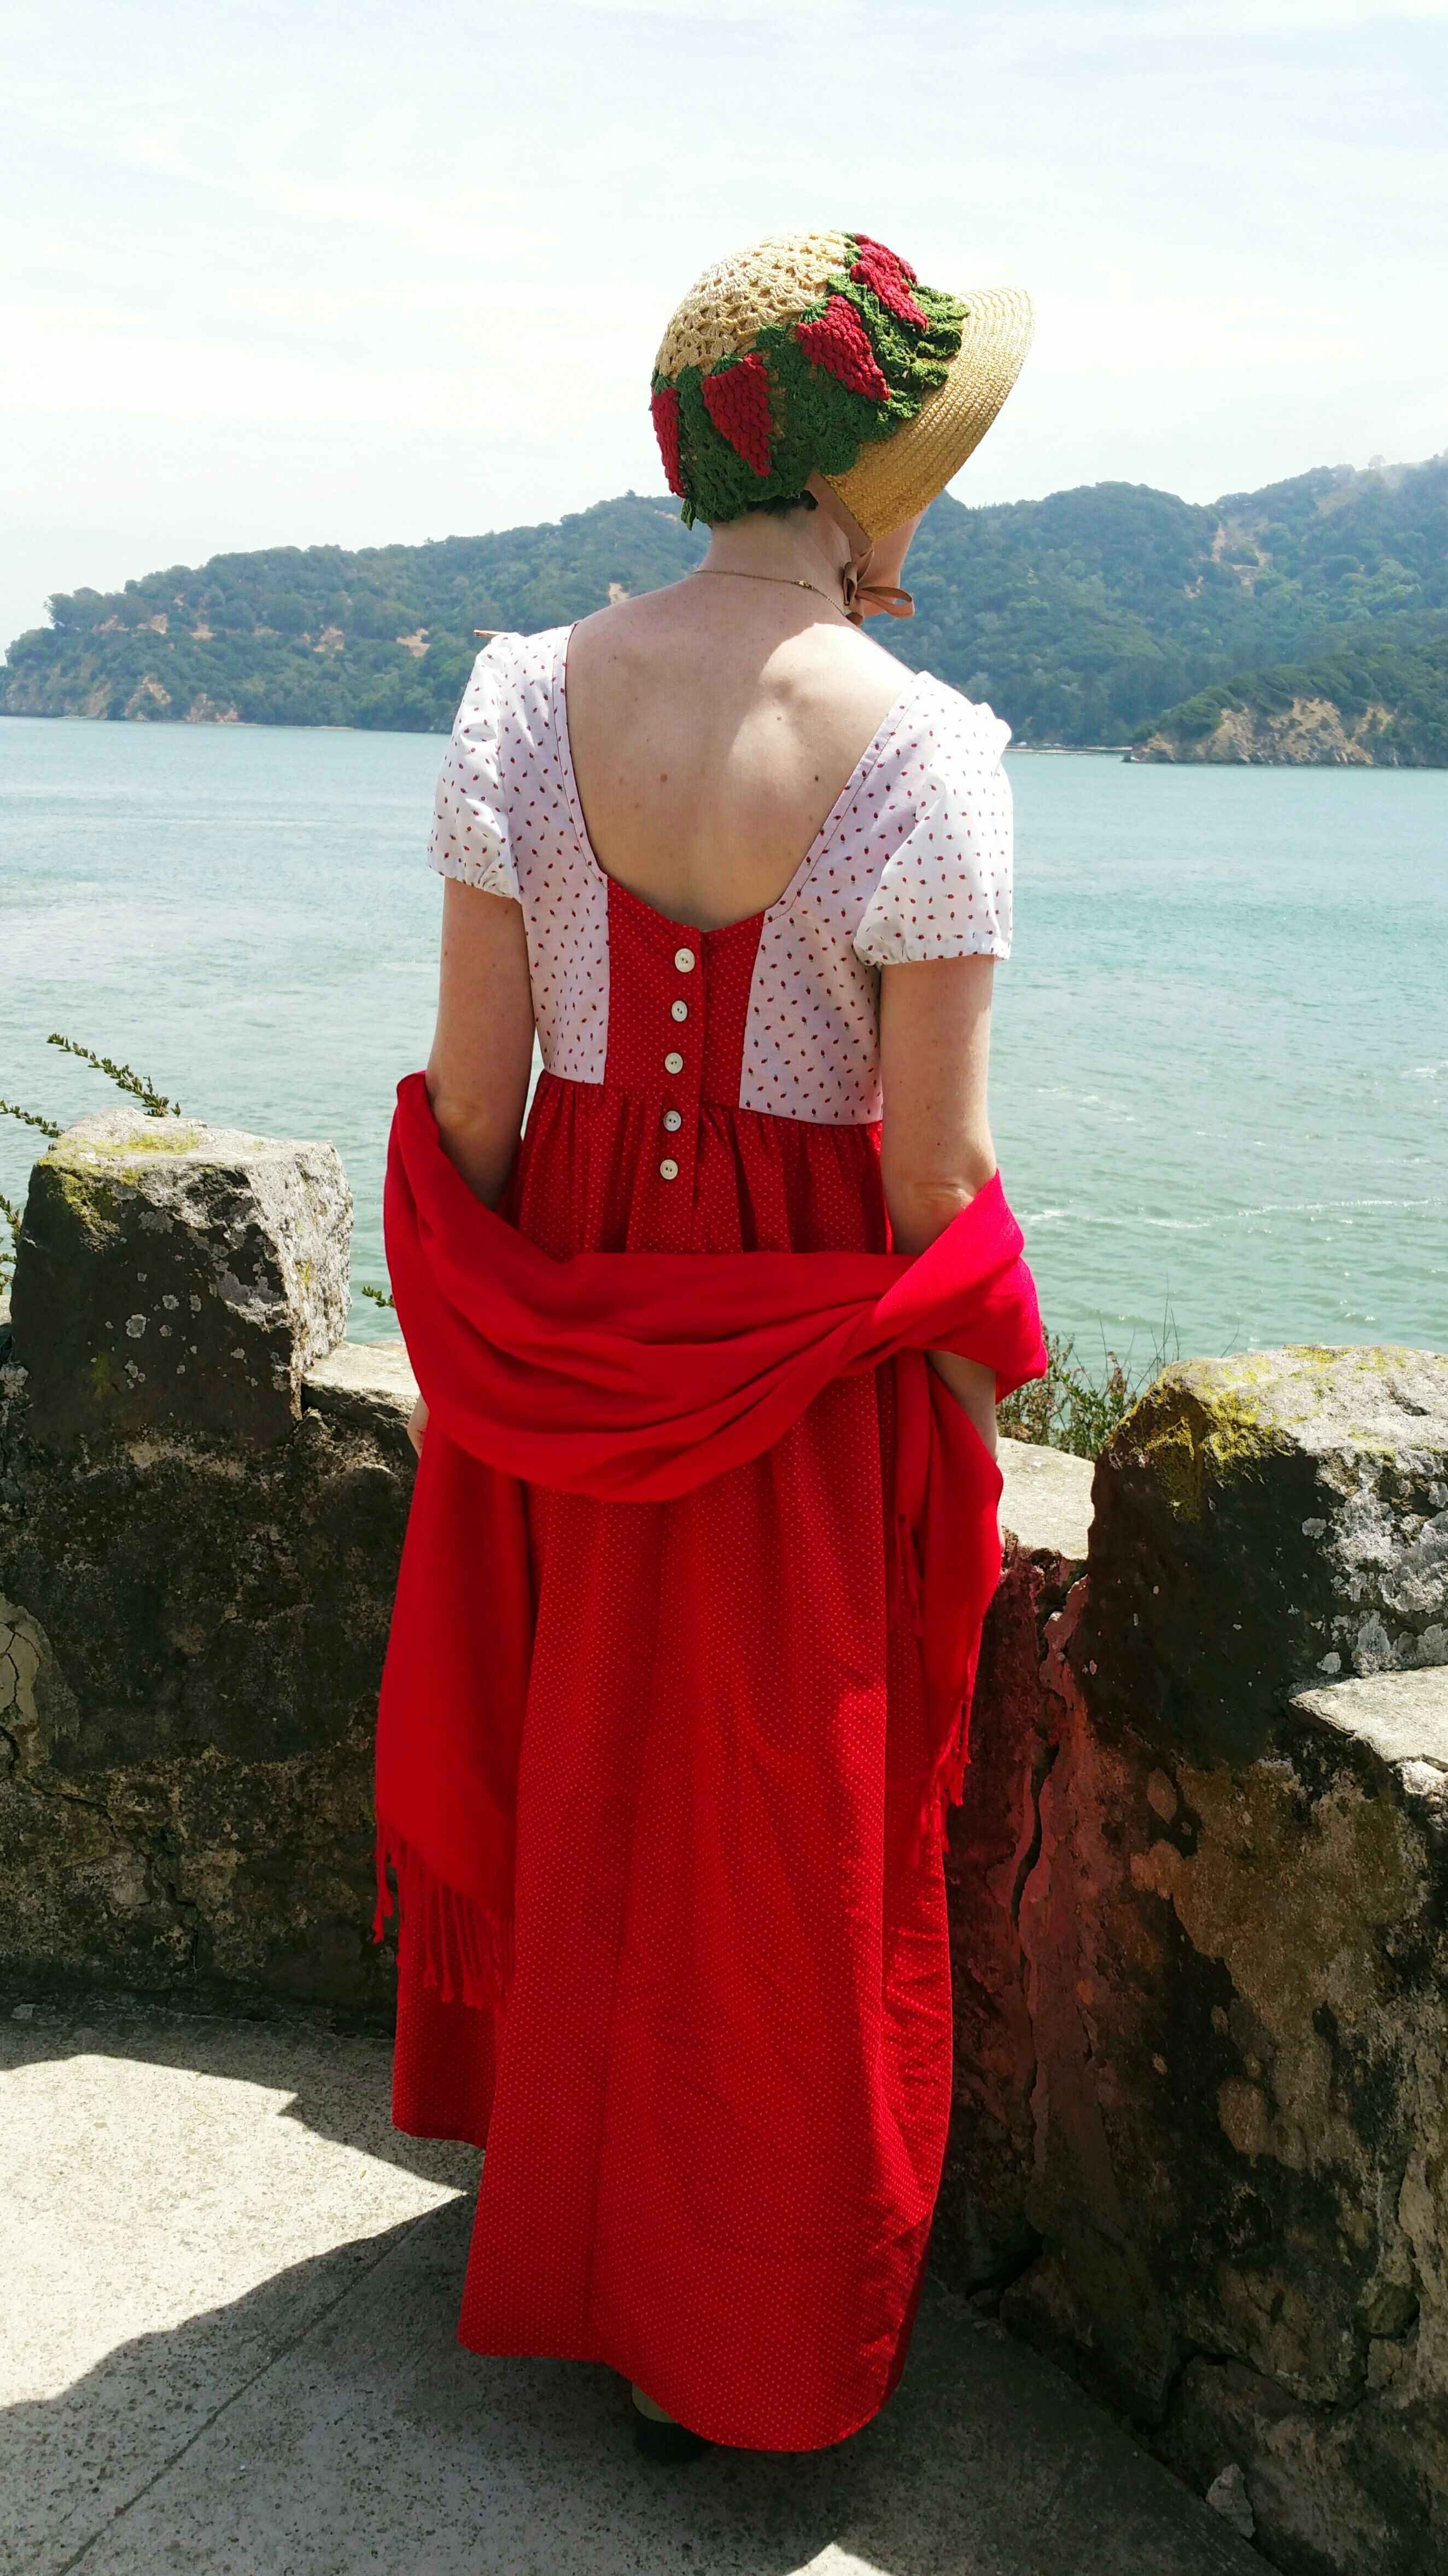 Sewing Journey: Regency-Inspired Costume